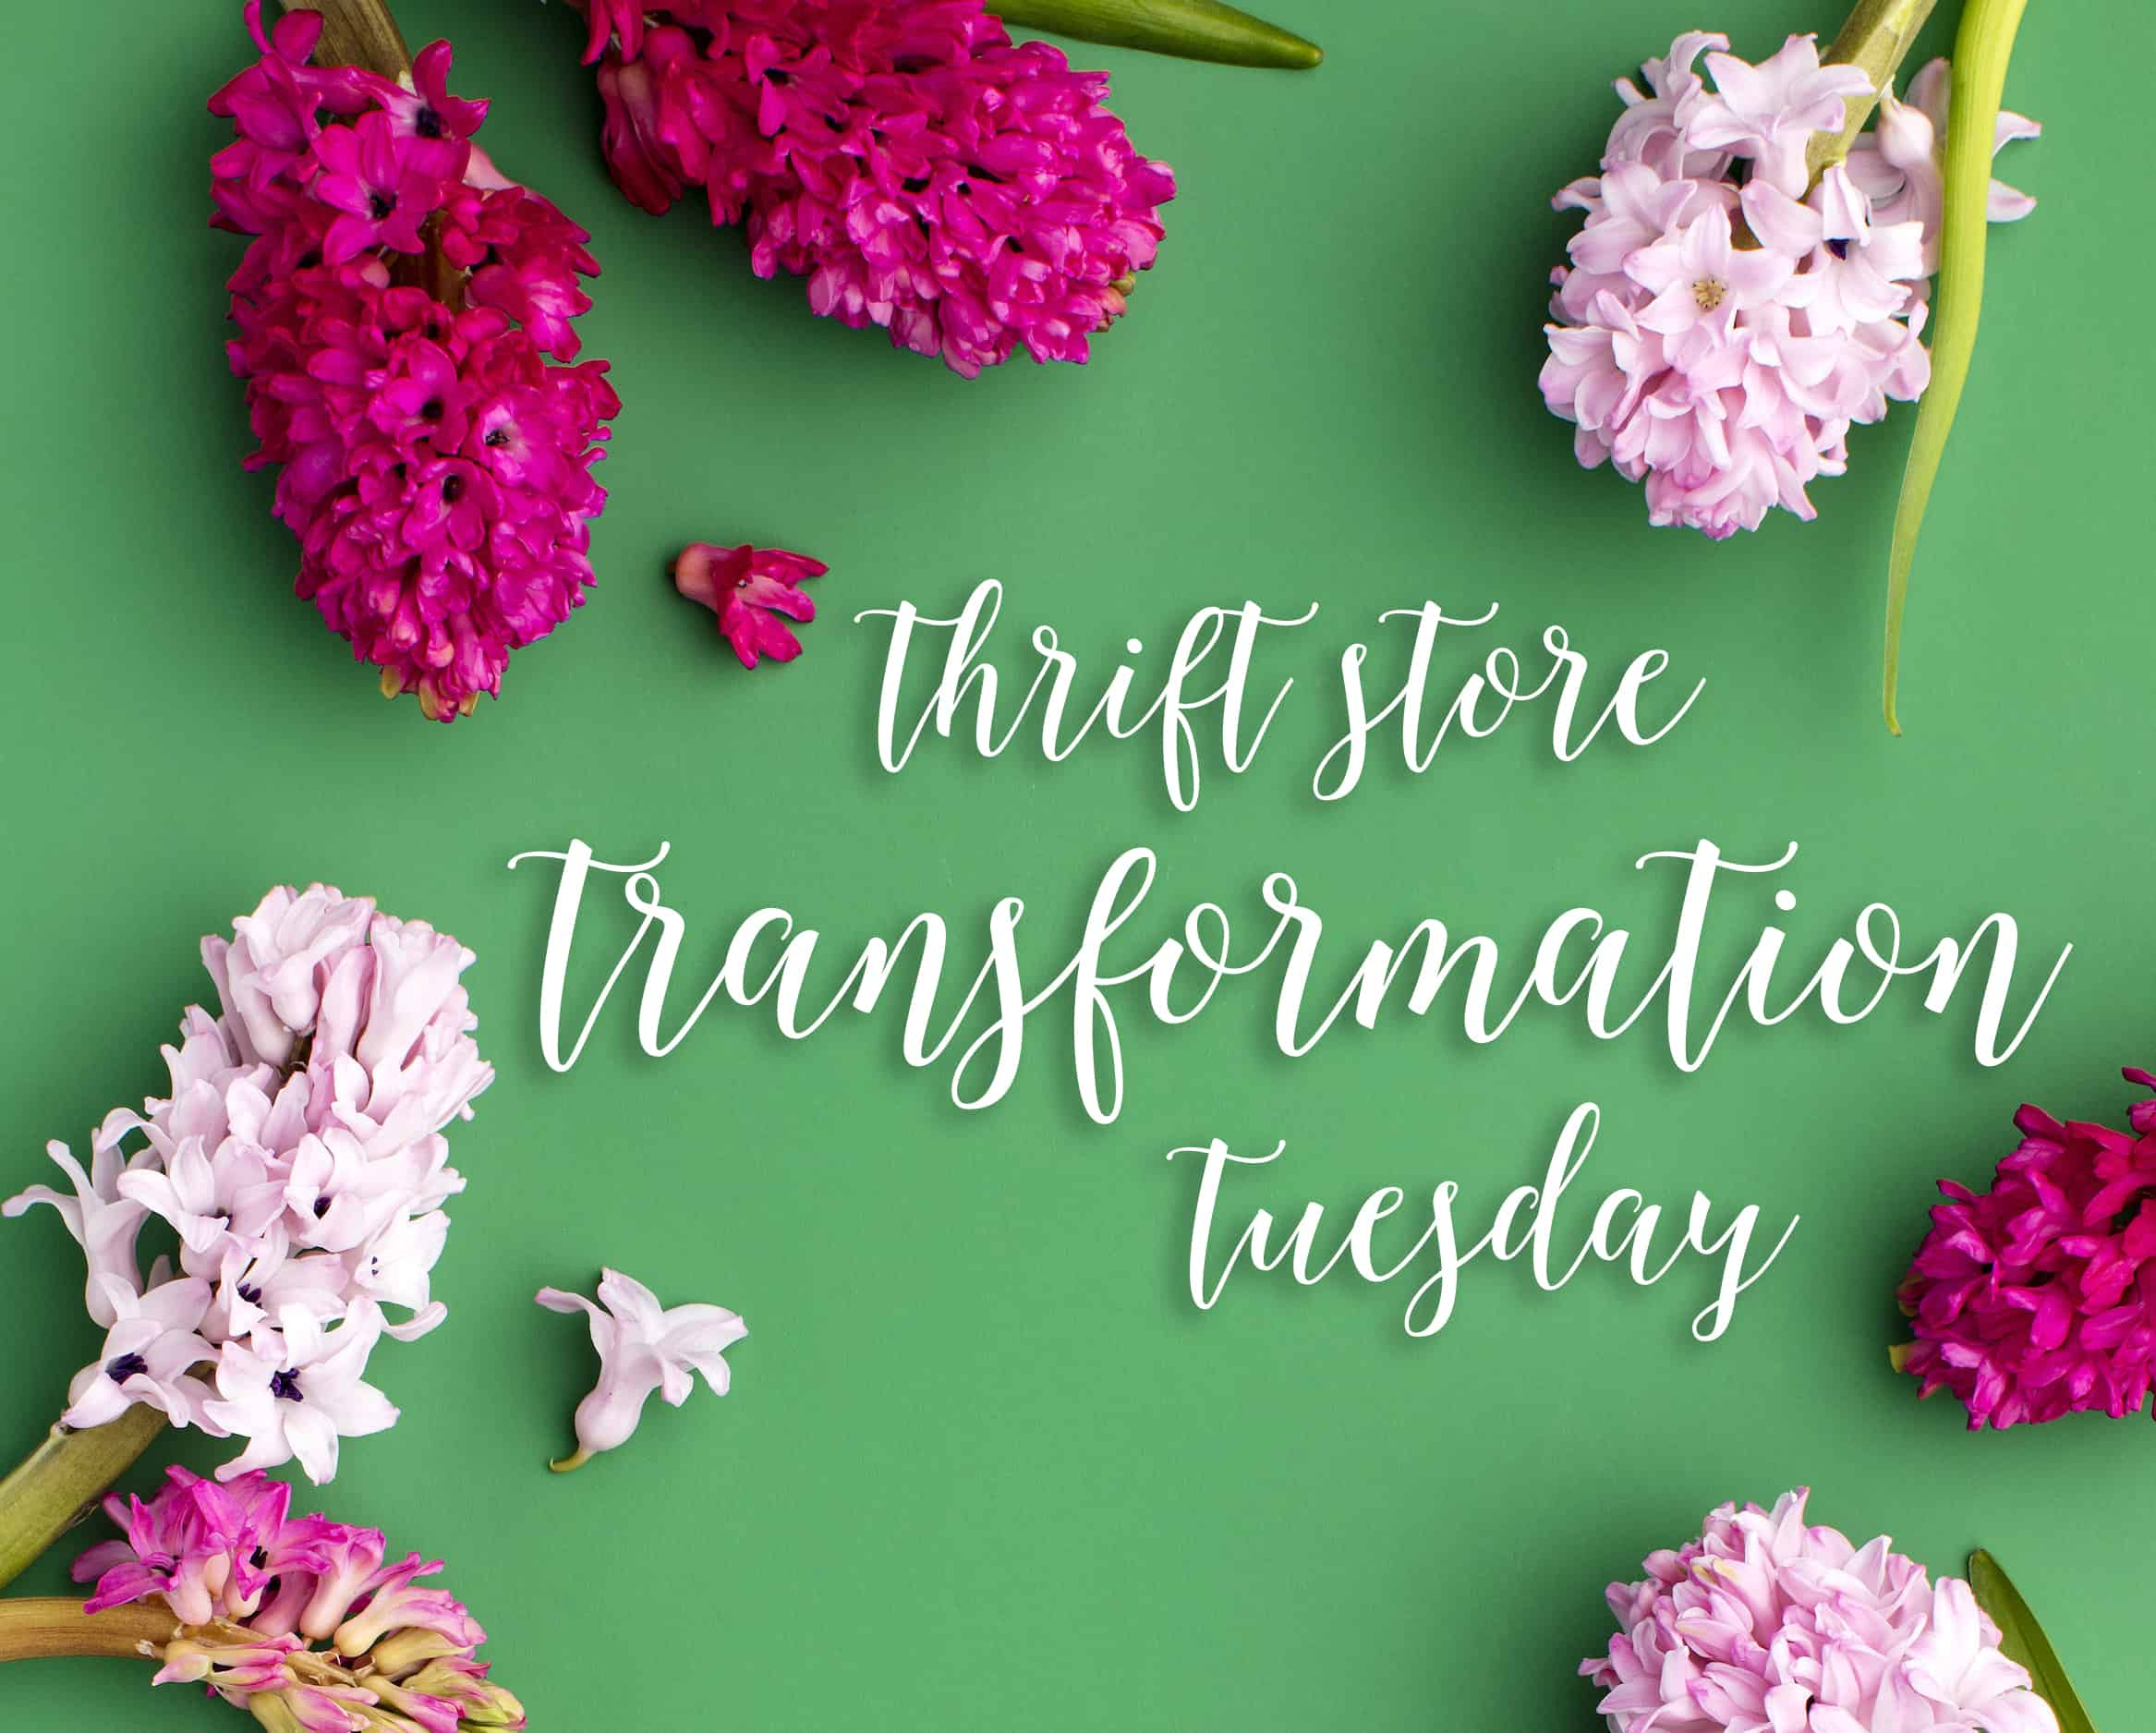 Join us the second Tuesday of every month for thrift store transformations! I've joined with a fantastic group of bloggers to show you that beautiful decor does not have to be expensive.